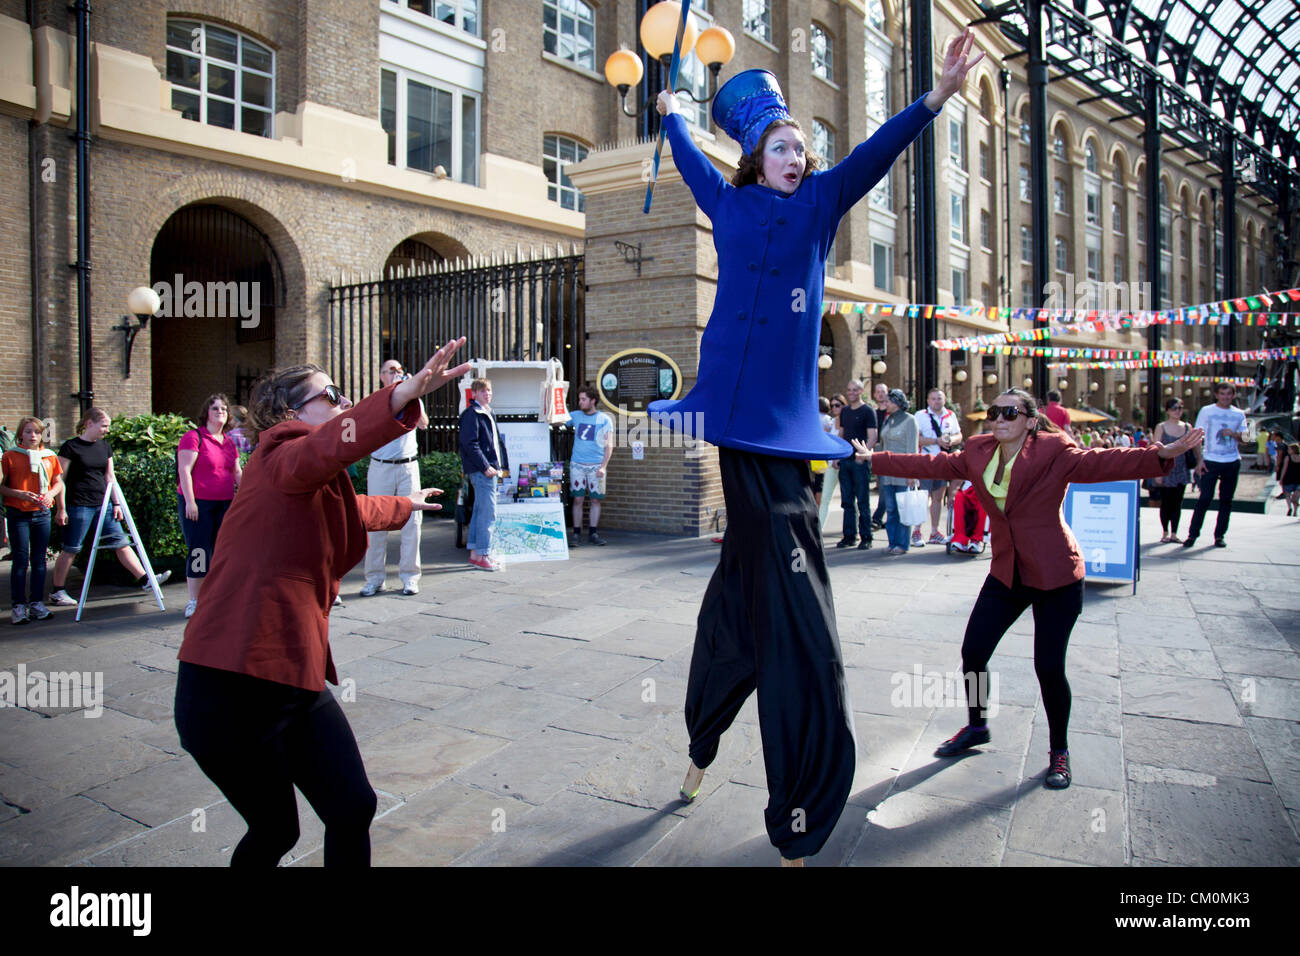 London, UK. 8th September, 2012. Performers perform a short play at Hays Galleria making fun of Olympic sports. - Stock Image